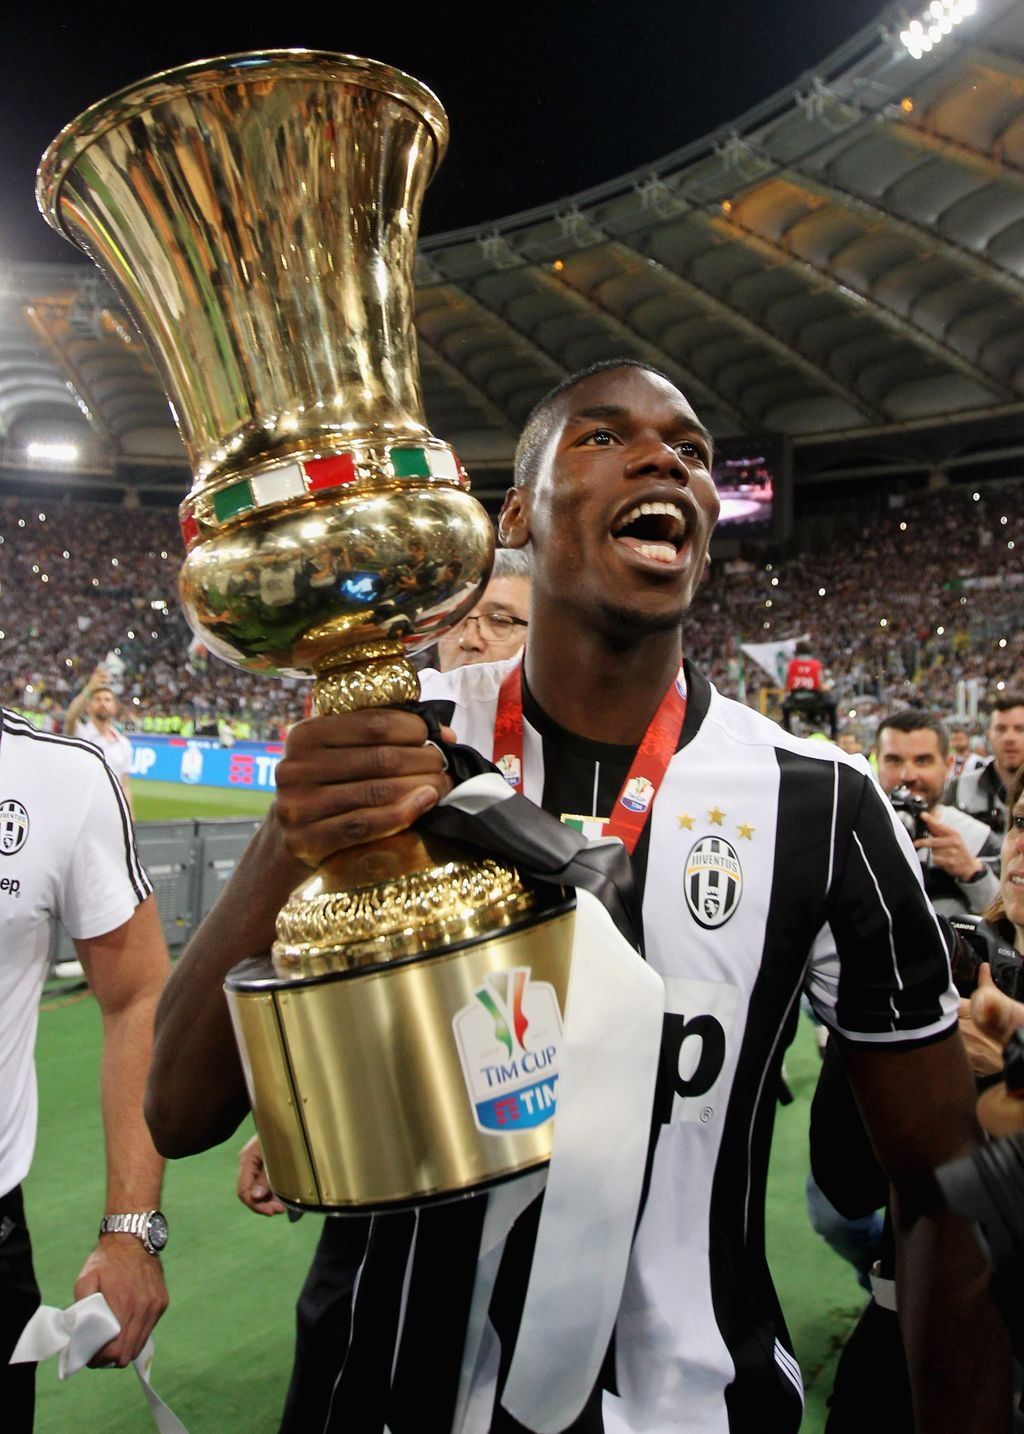 ROME, ITALY - MAY 21: Paul Pogba of Juventus FC celebrates with the trophy after winning the TIM Cup final match against AC Milan at Stadio Olimpico on May 21, 2016 in Rome, Italy.  (Photo by Paolo Bruno/Getty Images)